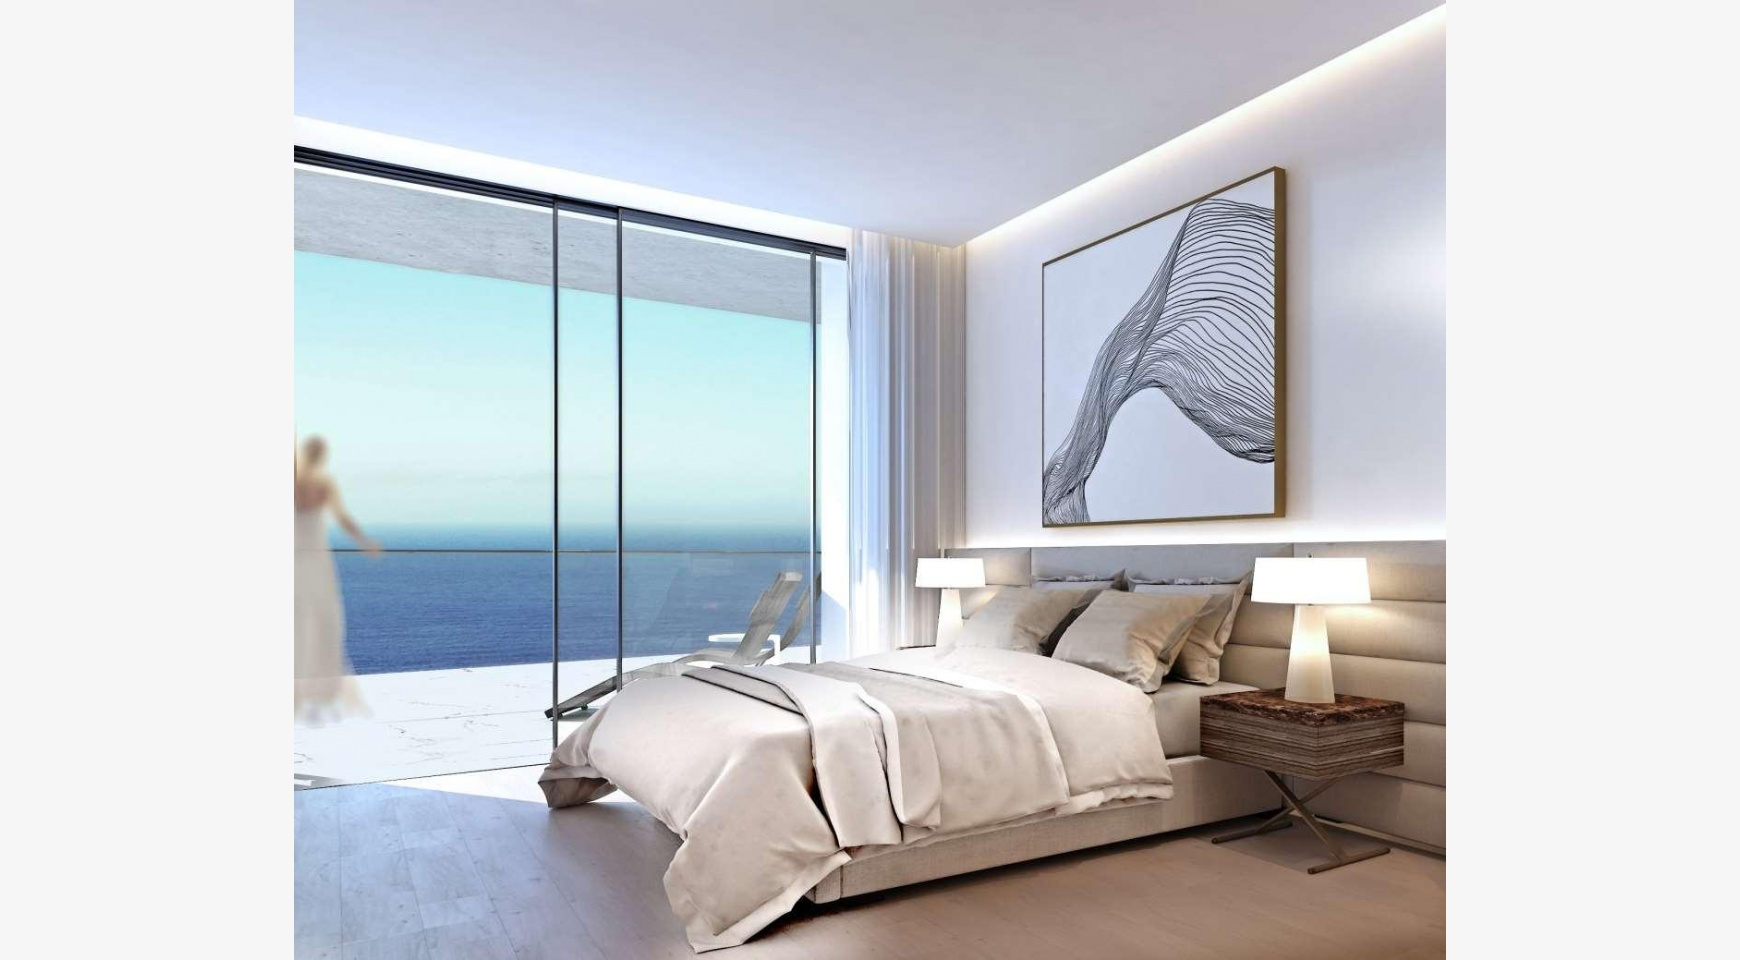 2 Bedroom Apartment in a New Project by the Sea in the City Centre - 8